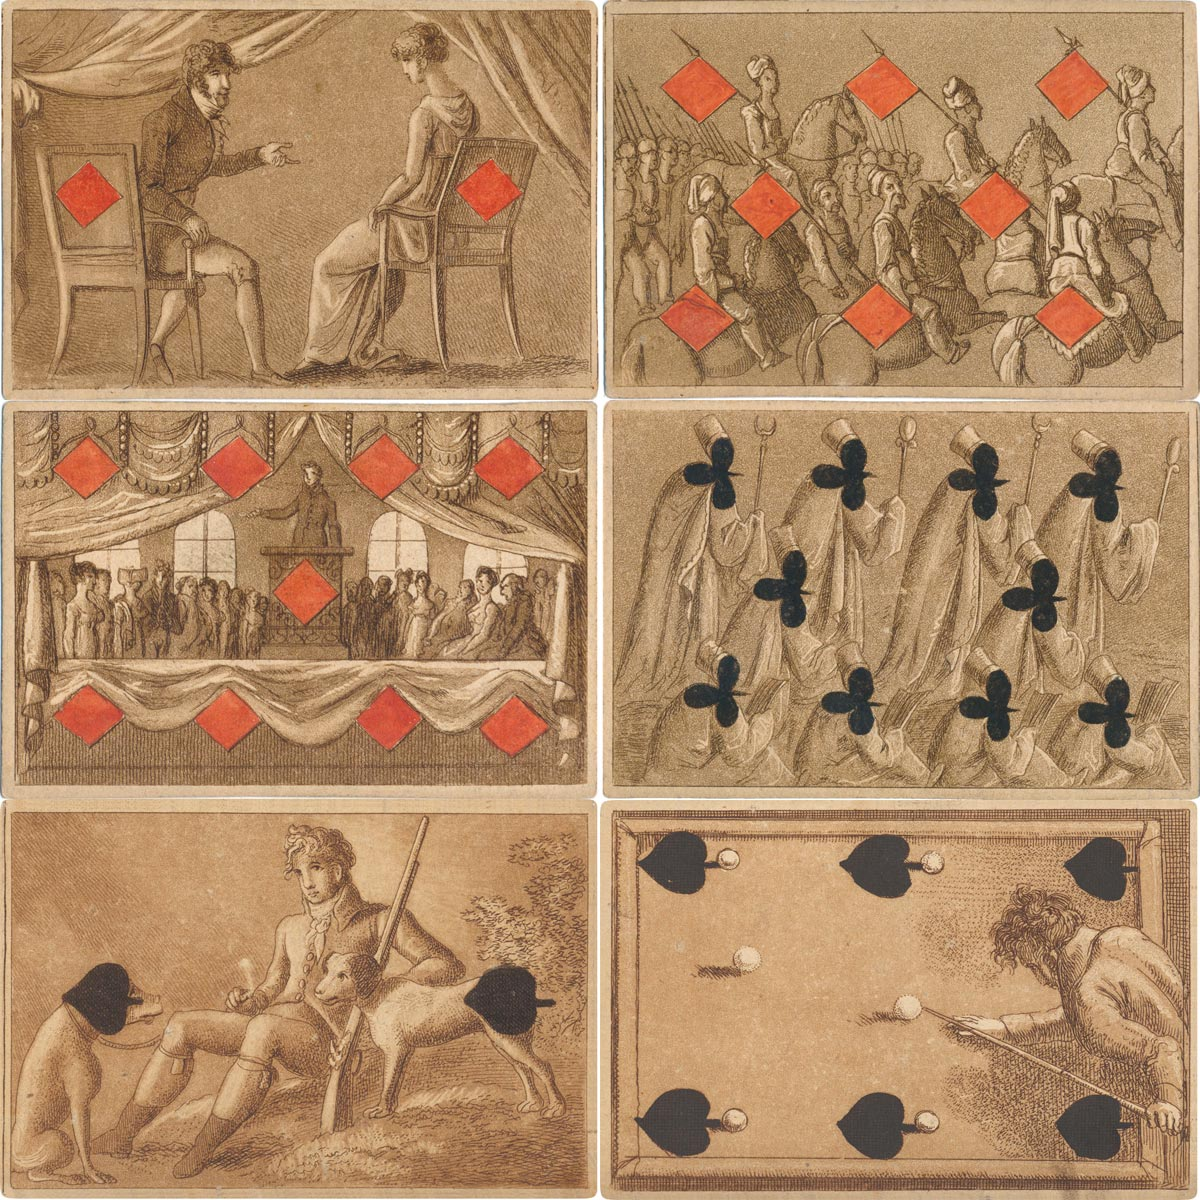 Transformation cards designed and etched by Vincenz Raimund Grüner, Vienna, 1809